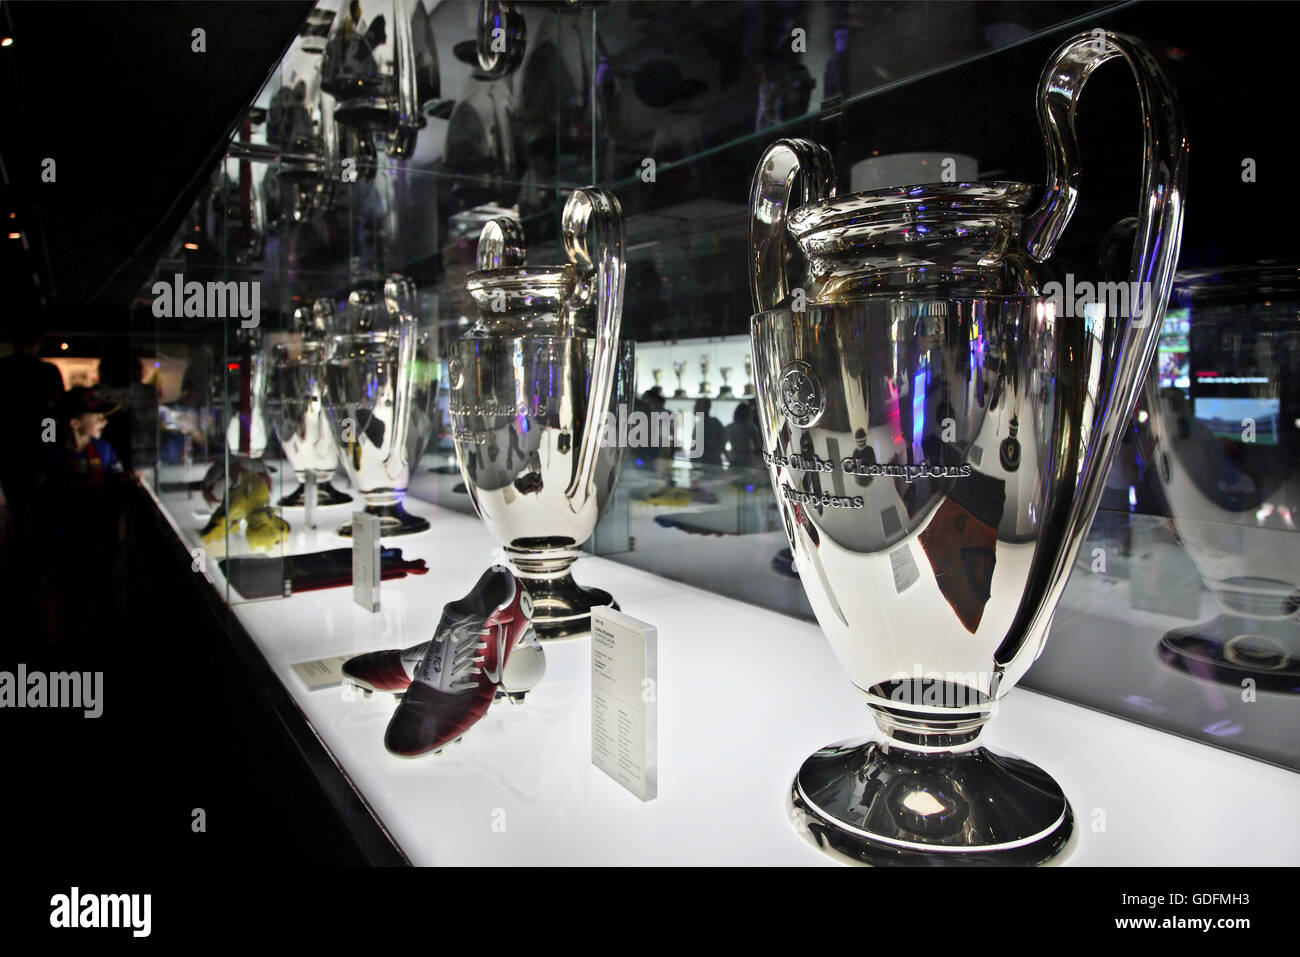 The Champions League cups won by FC Barcelona, in the FC Barcelona museum, Catalonia, Spain. - Stock Image